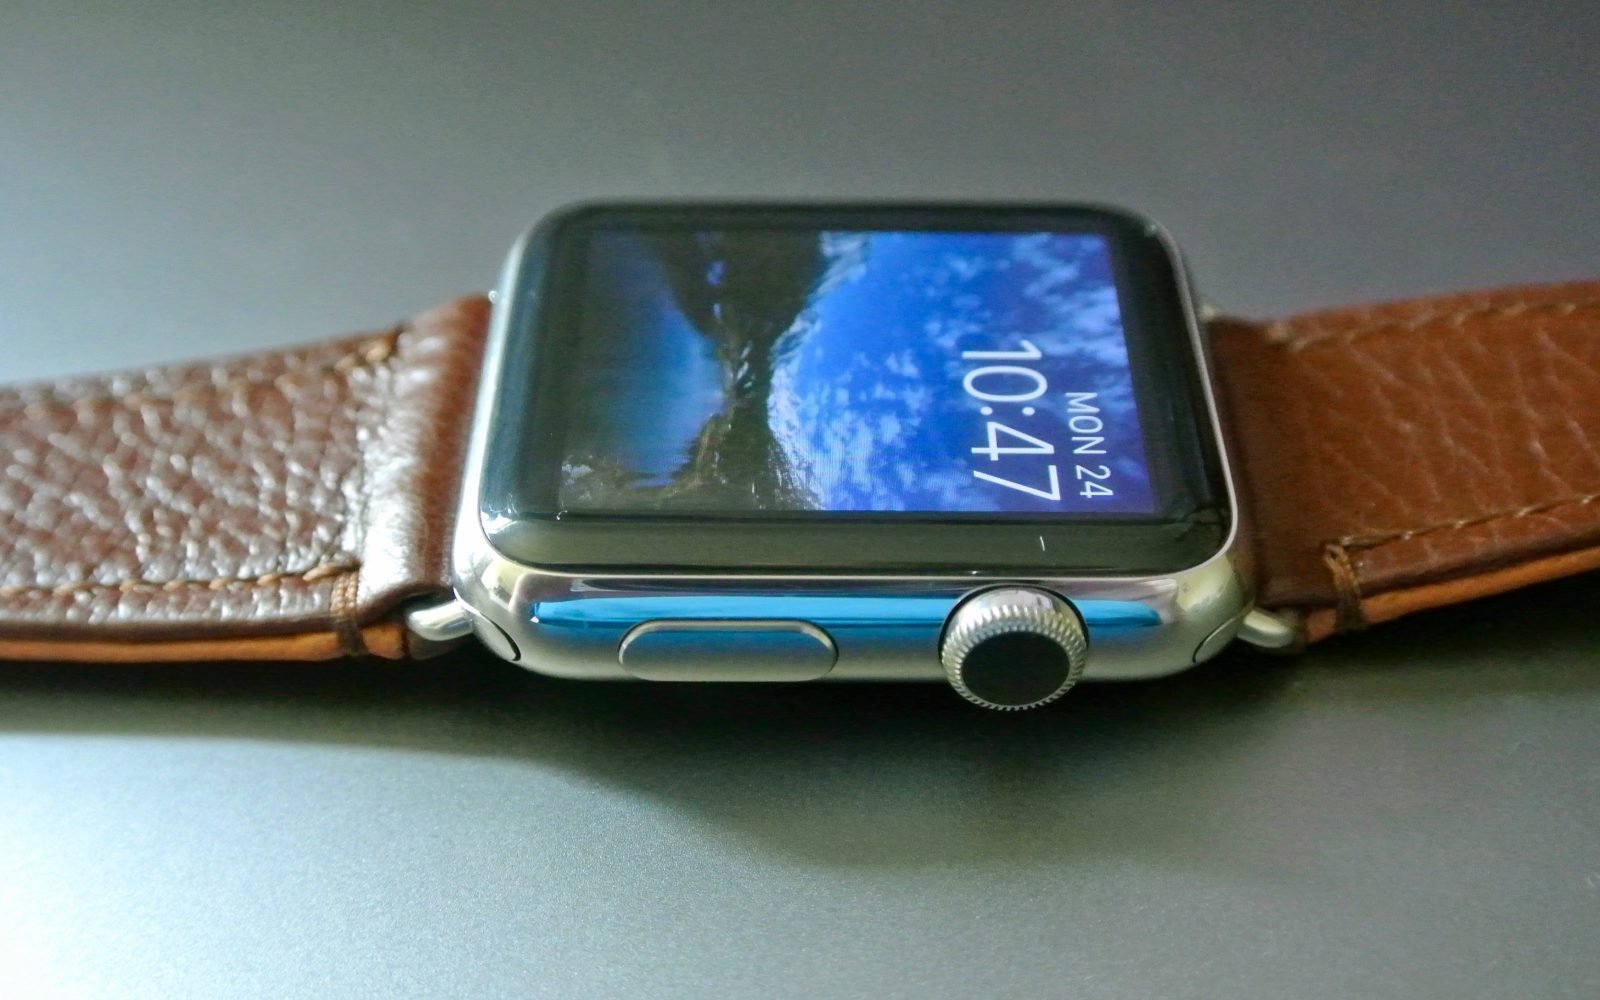 15c111bf05f176 Review: Pad & Quill's Classic Band dresses Apple Watch in rugged, American  leather